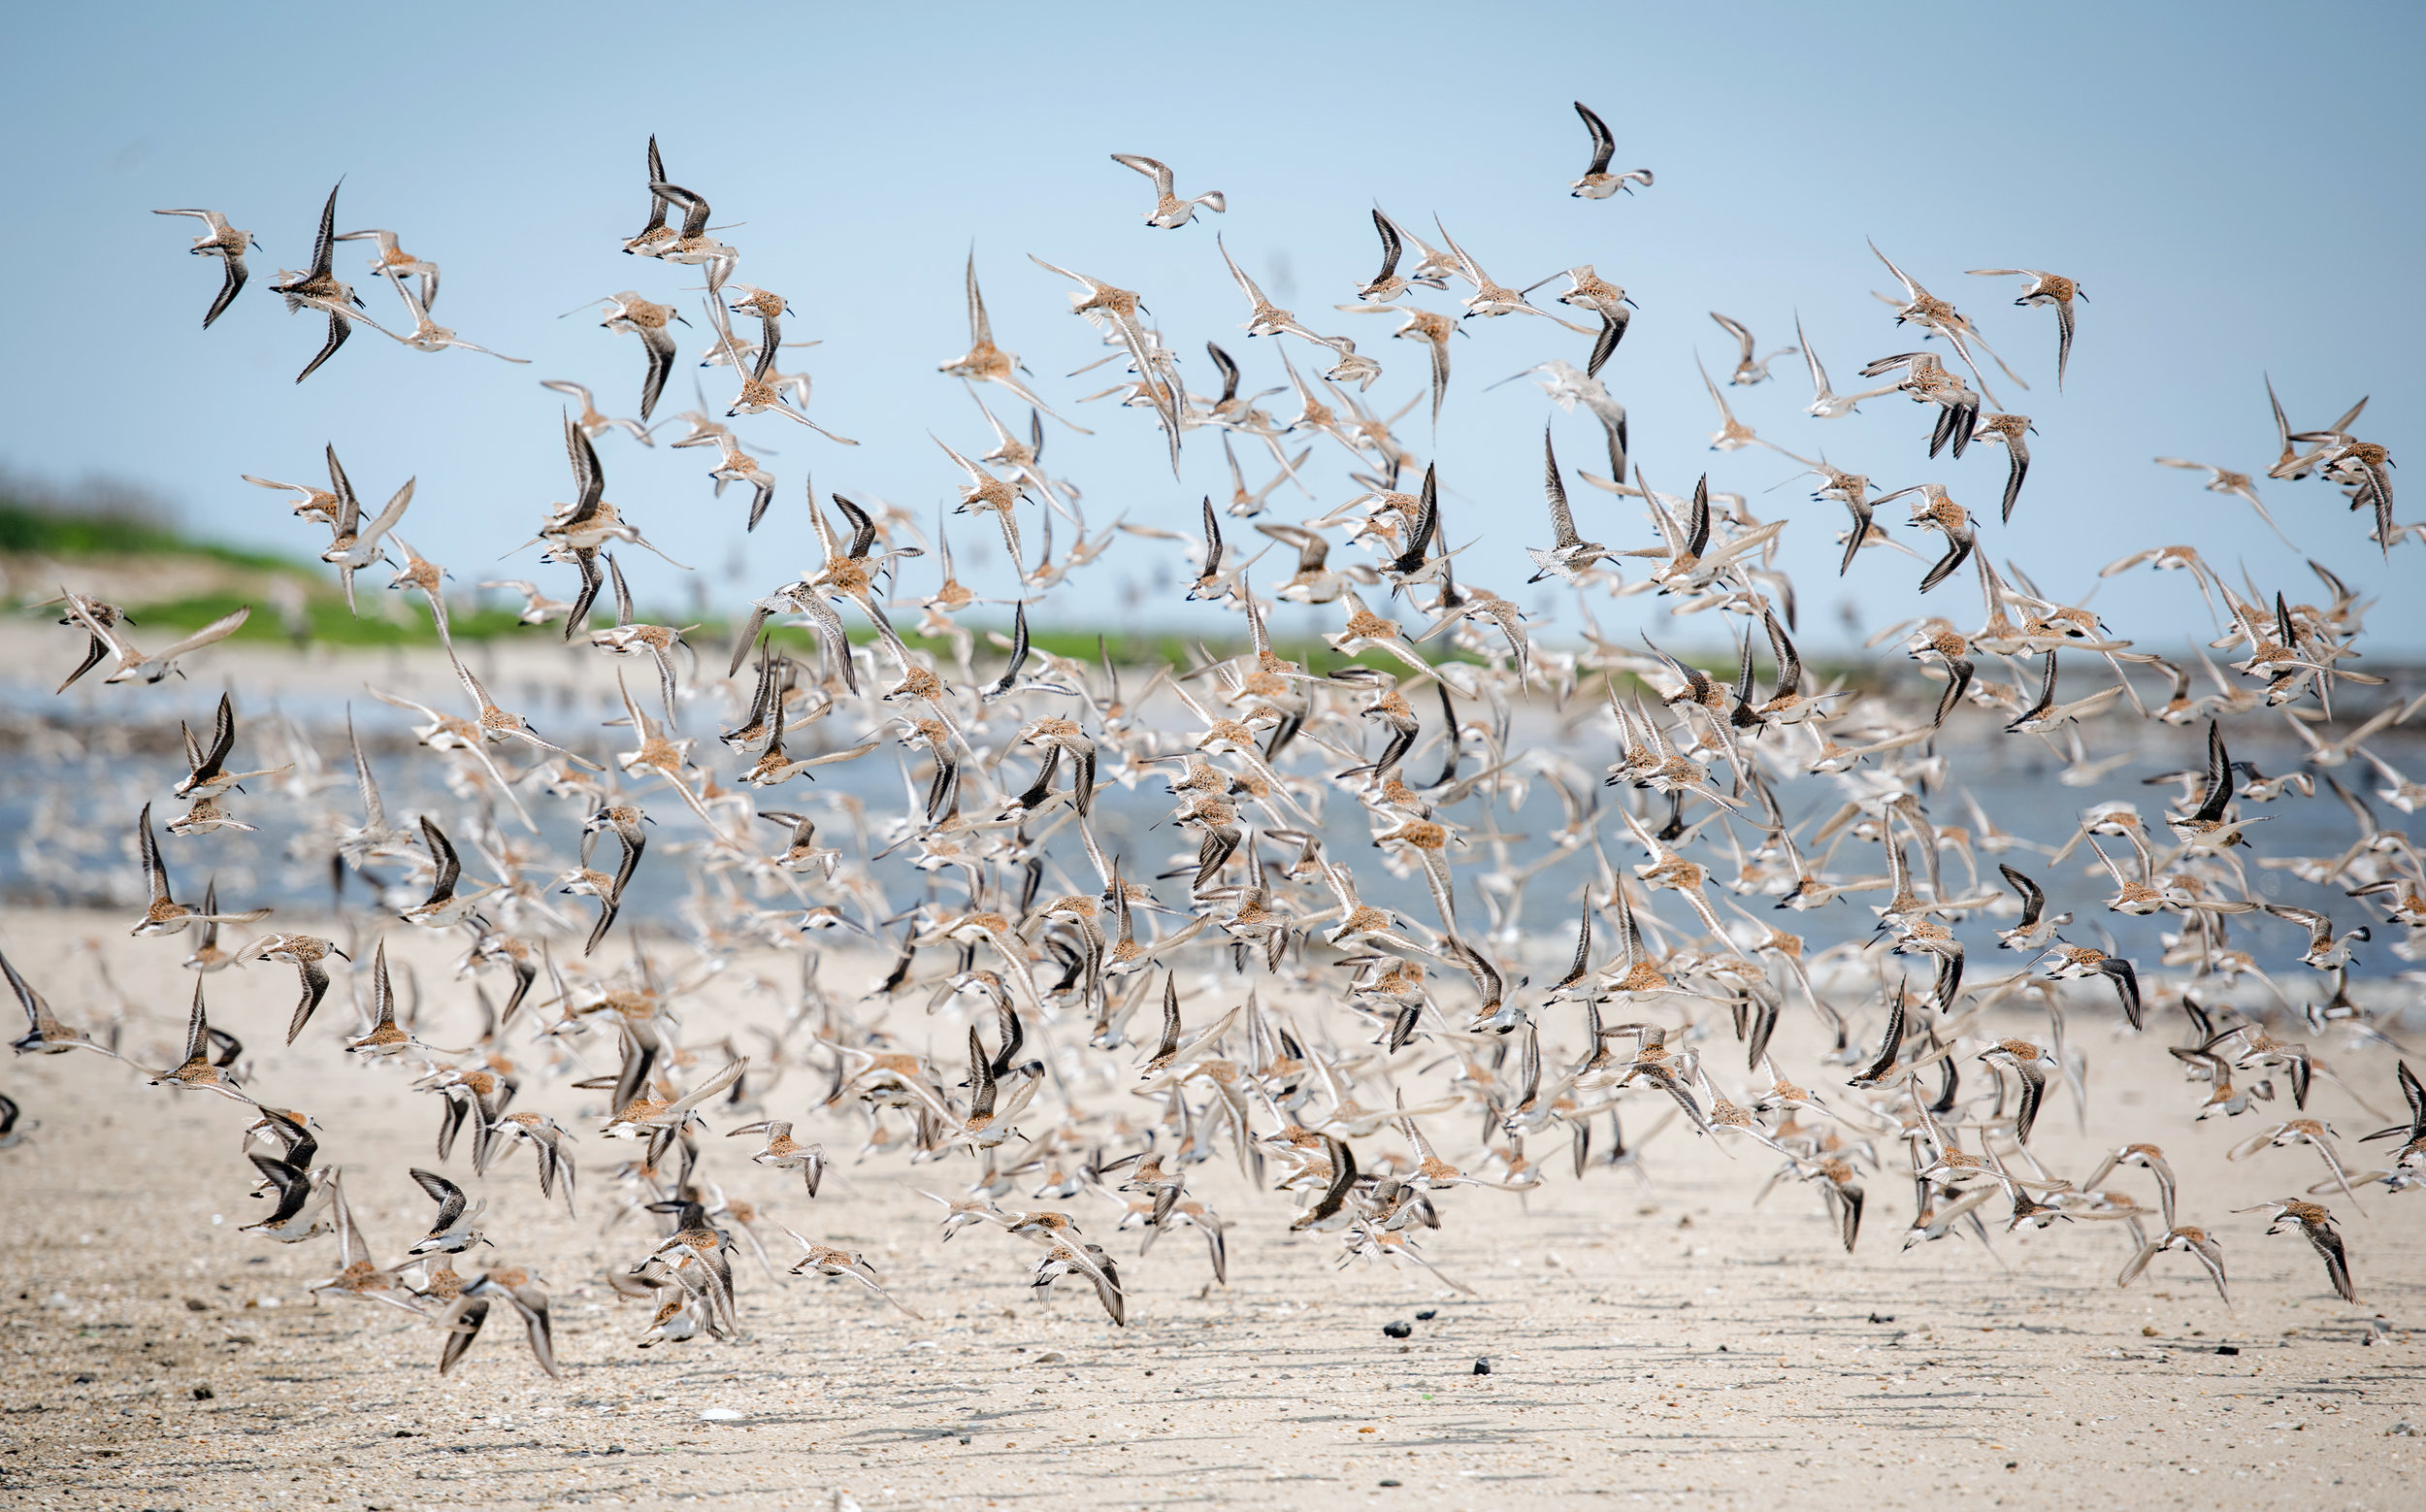 NRWF_Shorebirds_0126.JPG